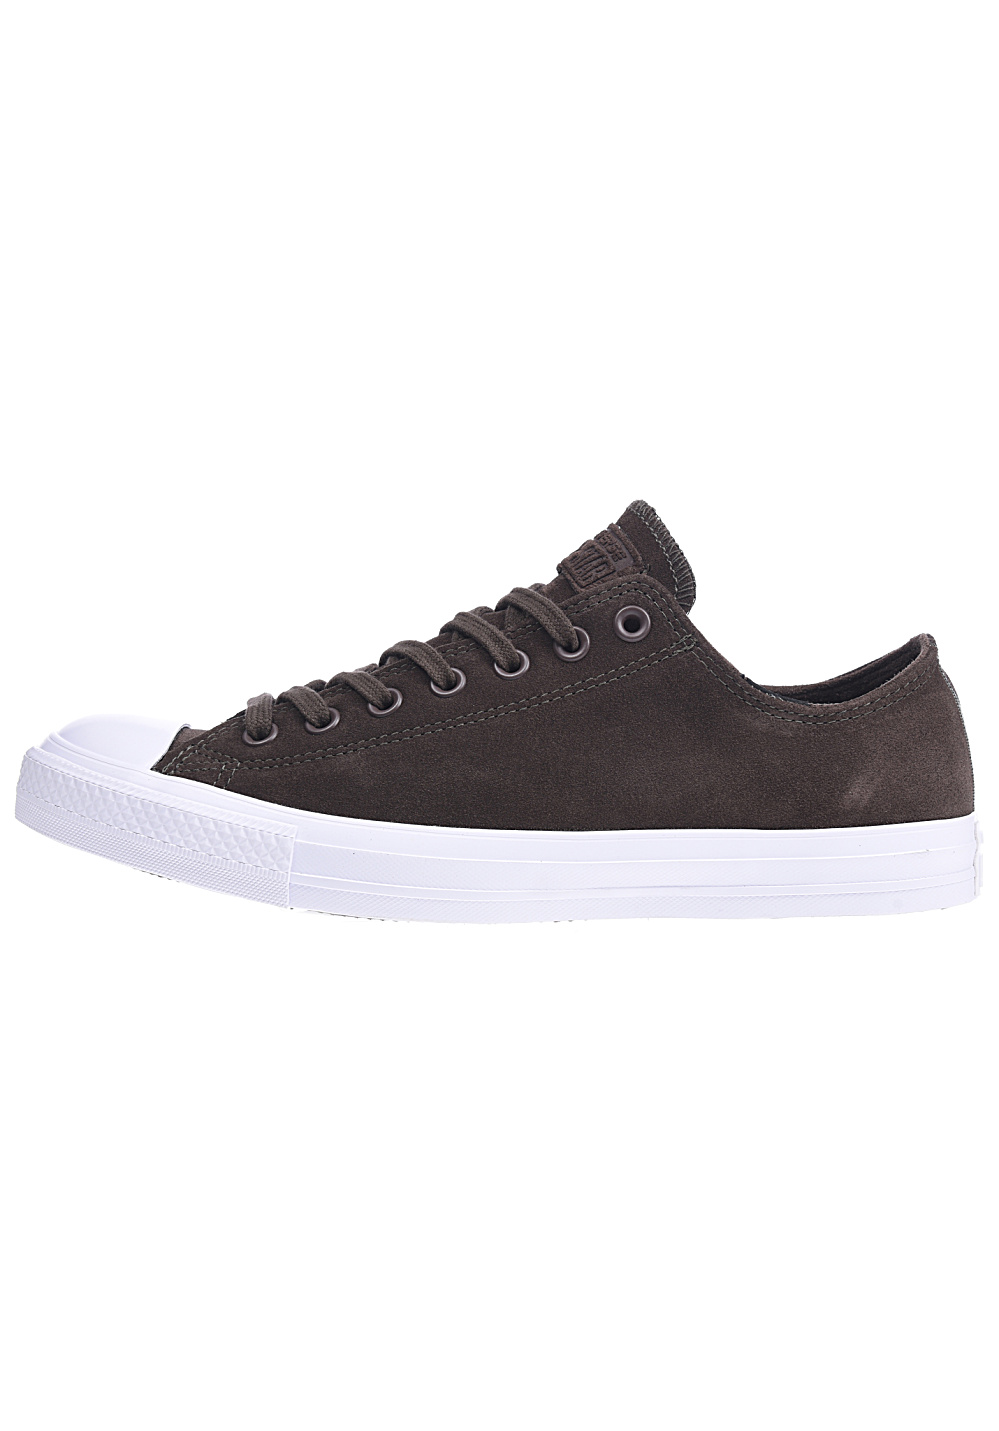 Baskets pour Femme Converse Chuck Taylor All Star Ox Marron